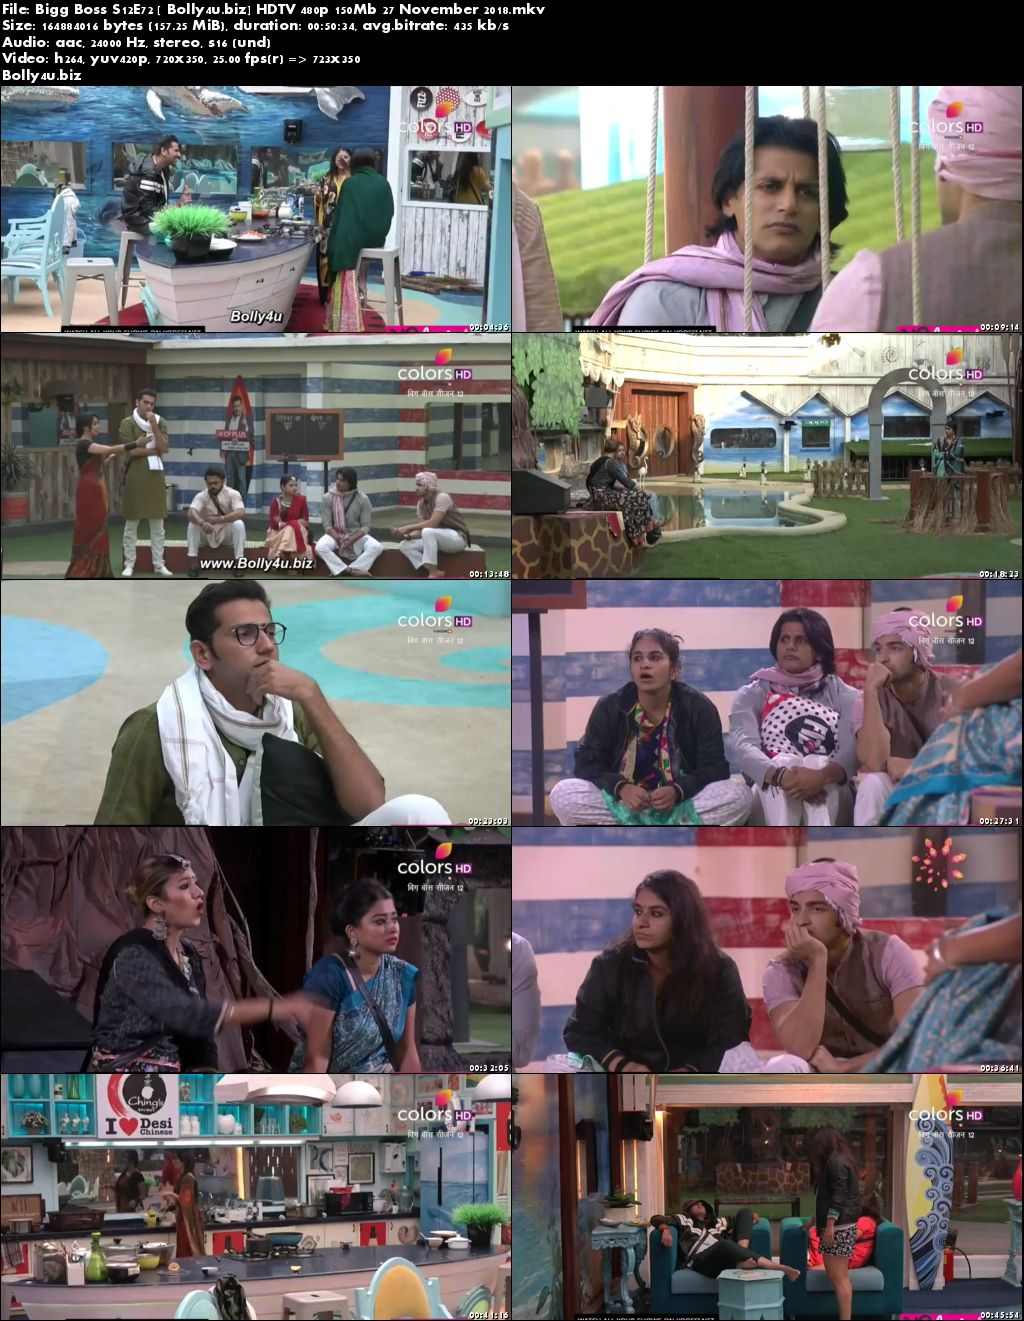 Bigg Boss S12E72 HDTV 480p 150Mb 27 November 2018 Download